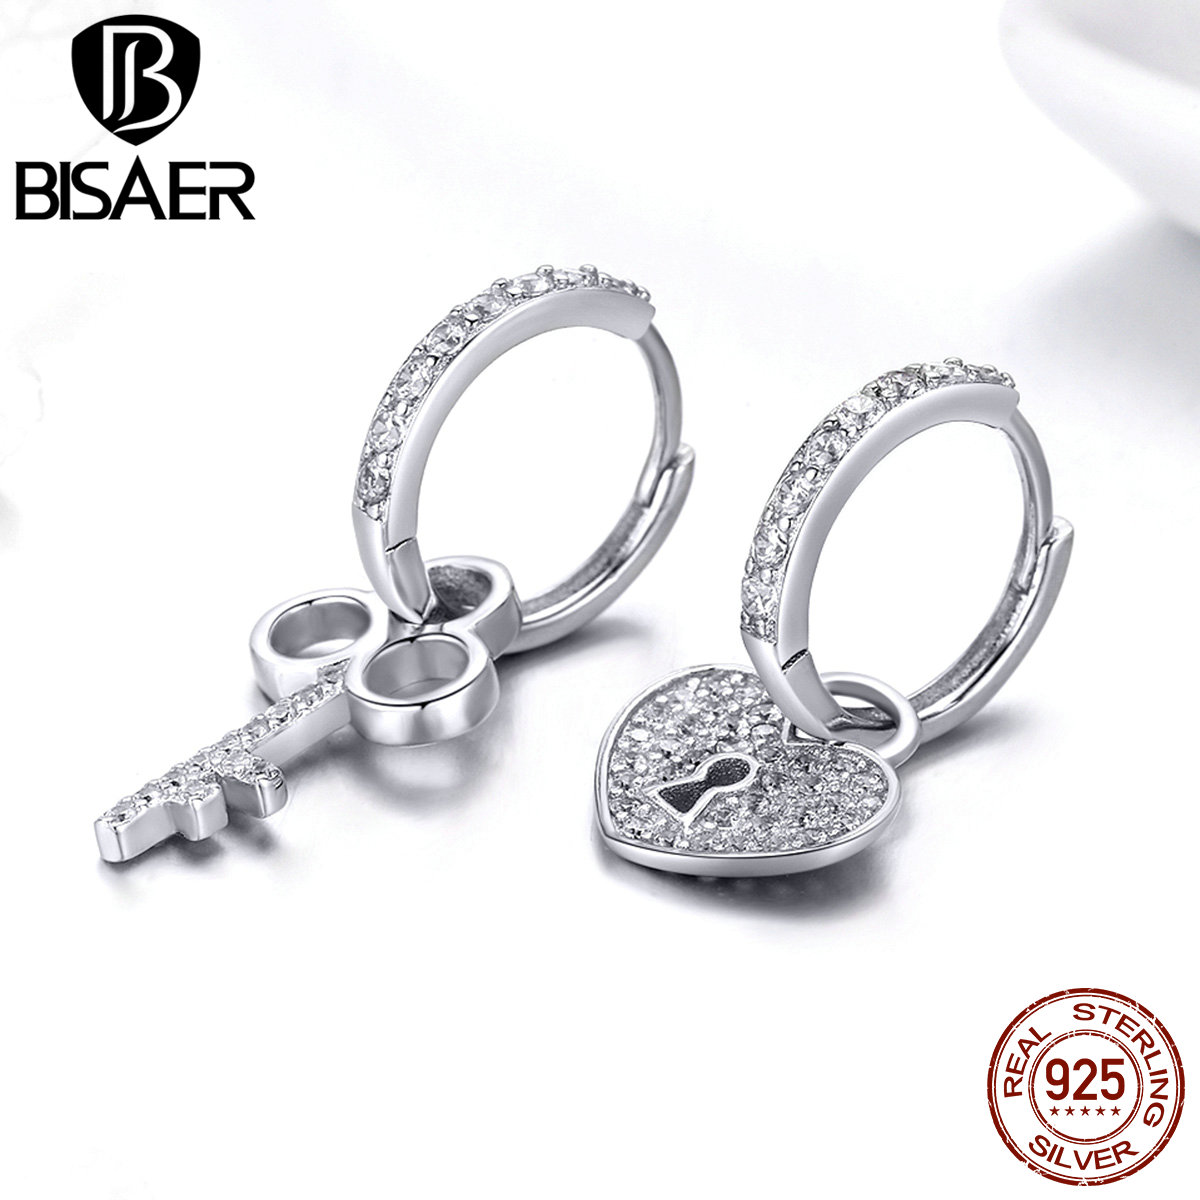 BISAER Hot Sale 925 Sterling Silver Love <font><b>Heart</b></font> <font><b>Lock</b></font> & Crystal Key Shape Stud <font><b>Earrings</b></font> Stud Women Wedding Jewelry Brincos ECE577 image